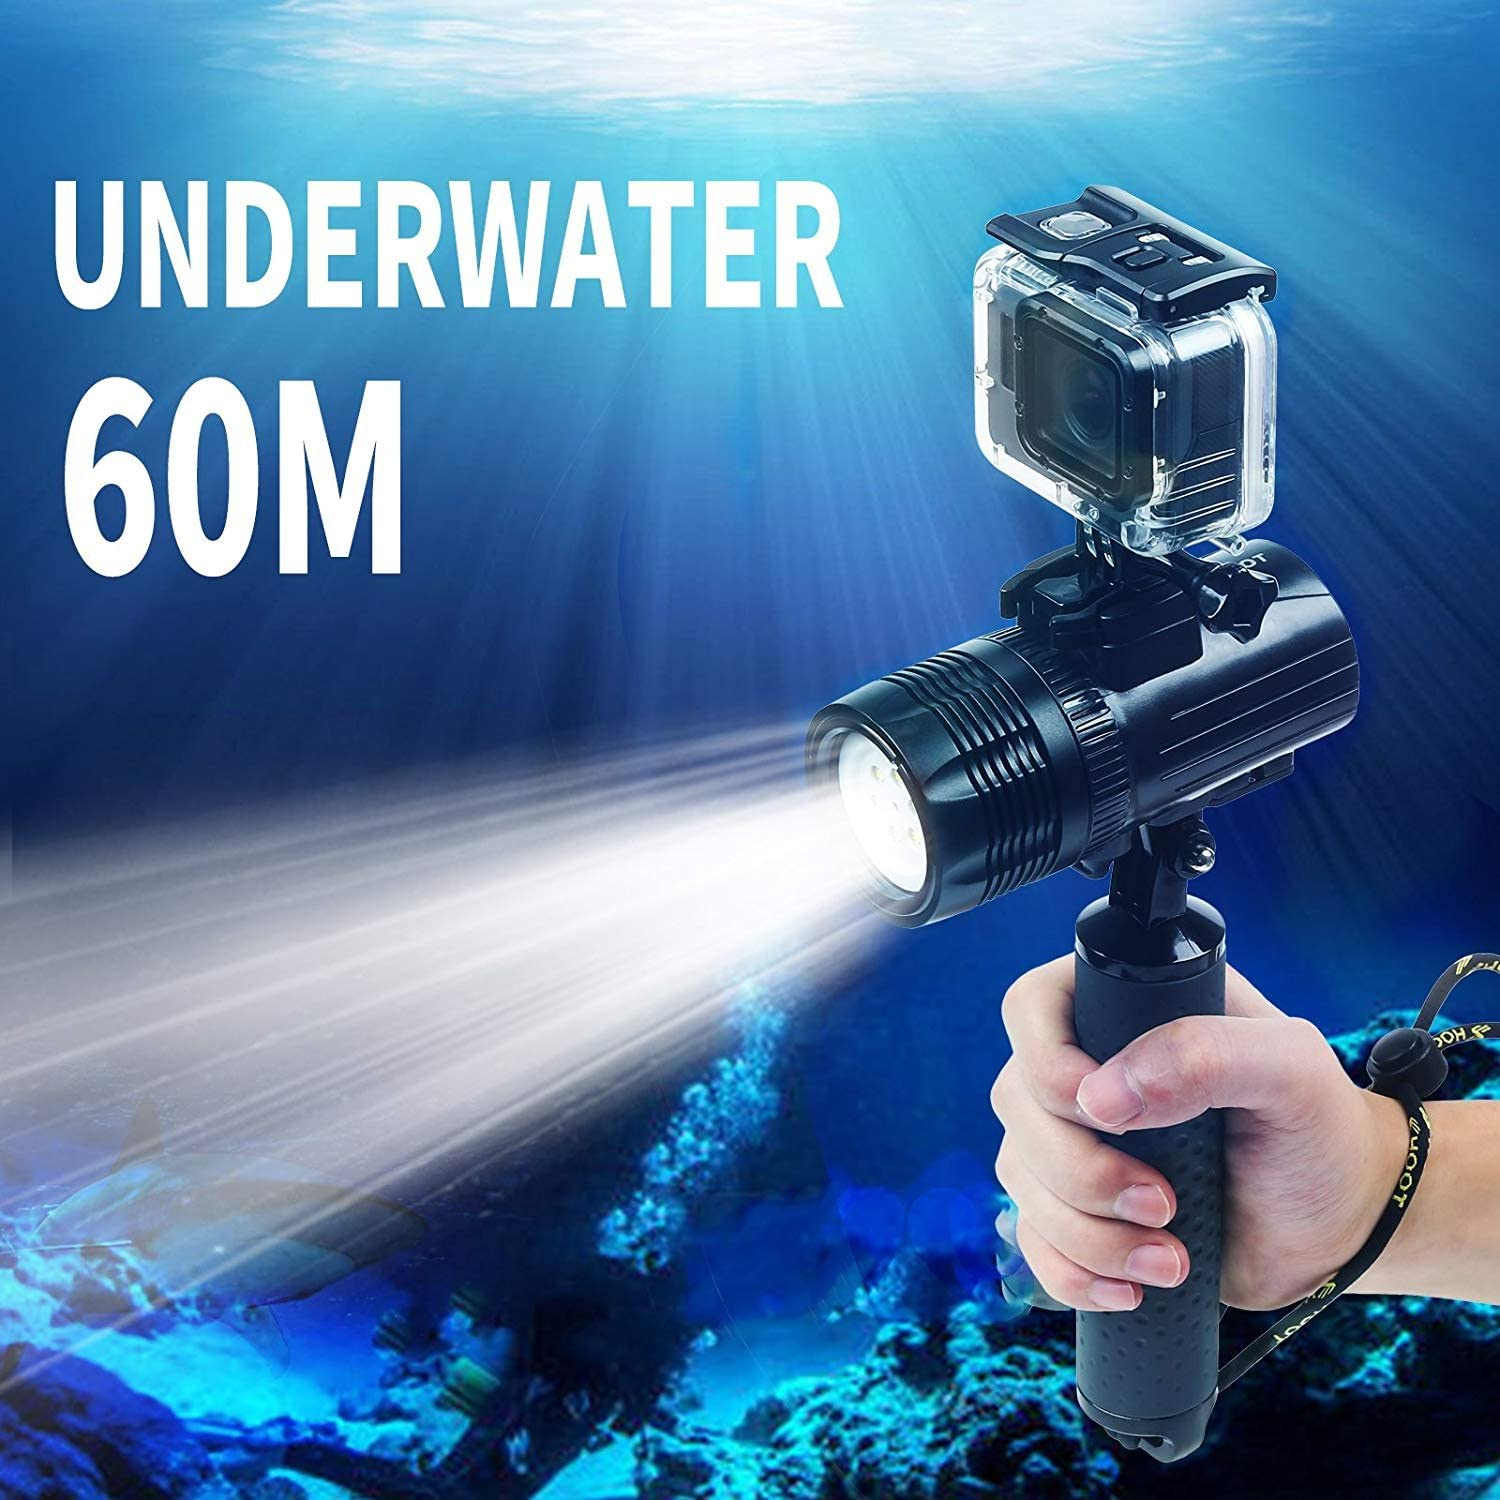 SHOOT Handheld Pro Diving Flashlights Torch for GoPro Hero 8//7//6//5//4//3+//3 1000LM,Waterproof 60m,CREE XM-L R3,120/° Wide Angle,6500K Color Temperature,2000mAh Battery,with Floating Grip